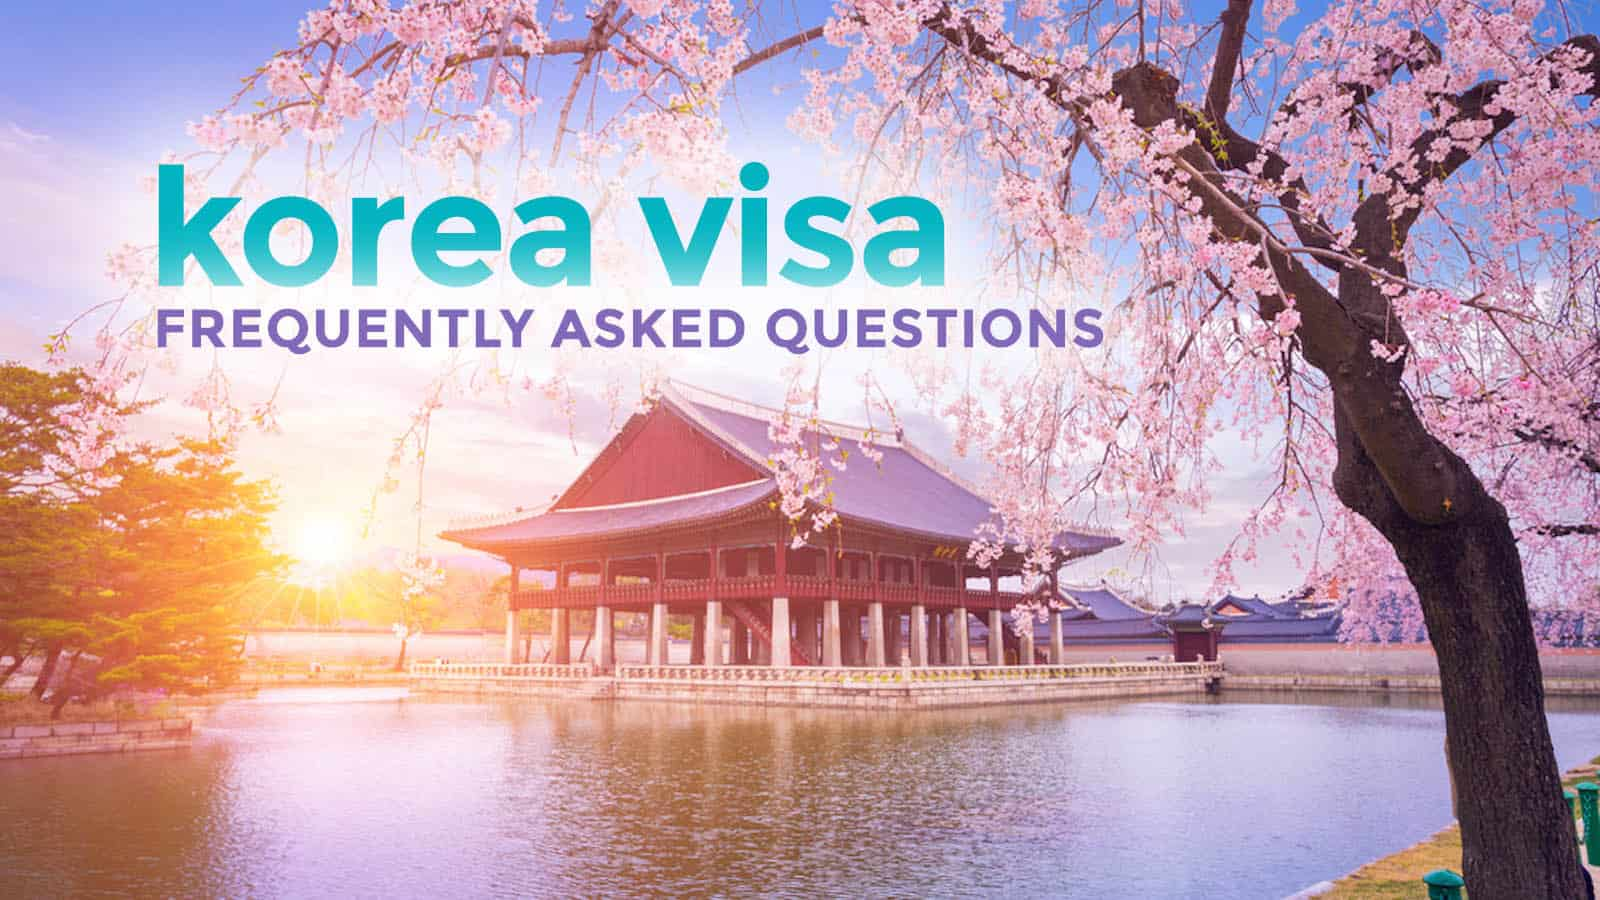 schengen visa for filipino tourists frequently asked questions korea visa for filipinos frequently asked questions answers